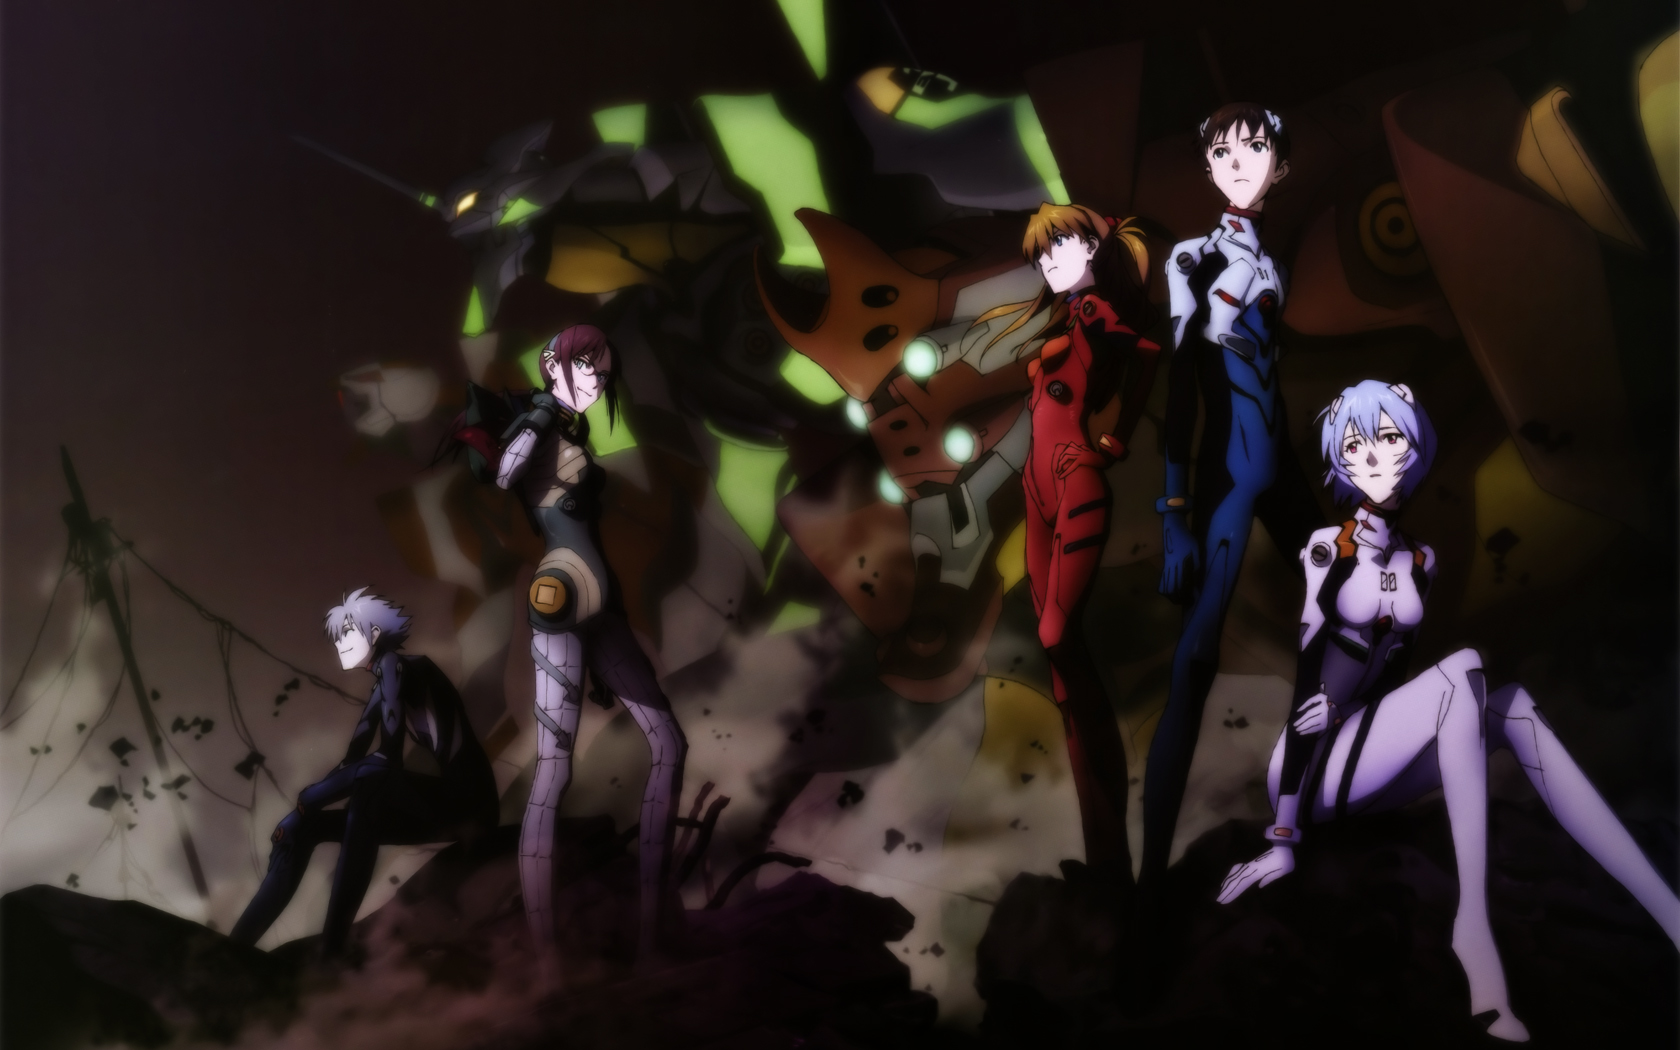 Neon Genesis Evangelion Res: 1680x1050 / Size:578kb. Views: 28174